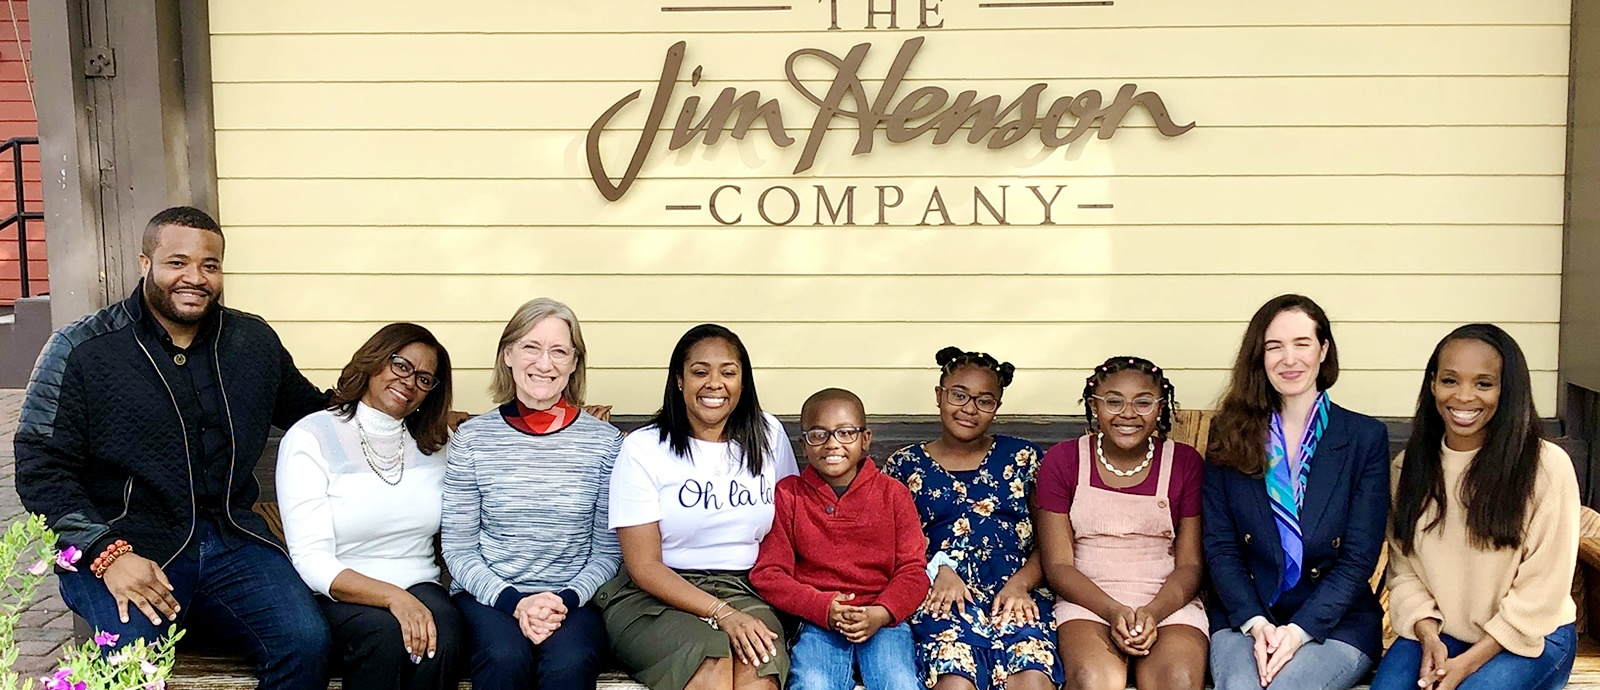 The Anderson Family & The Jim and Henson Company